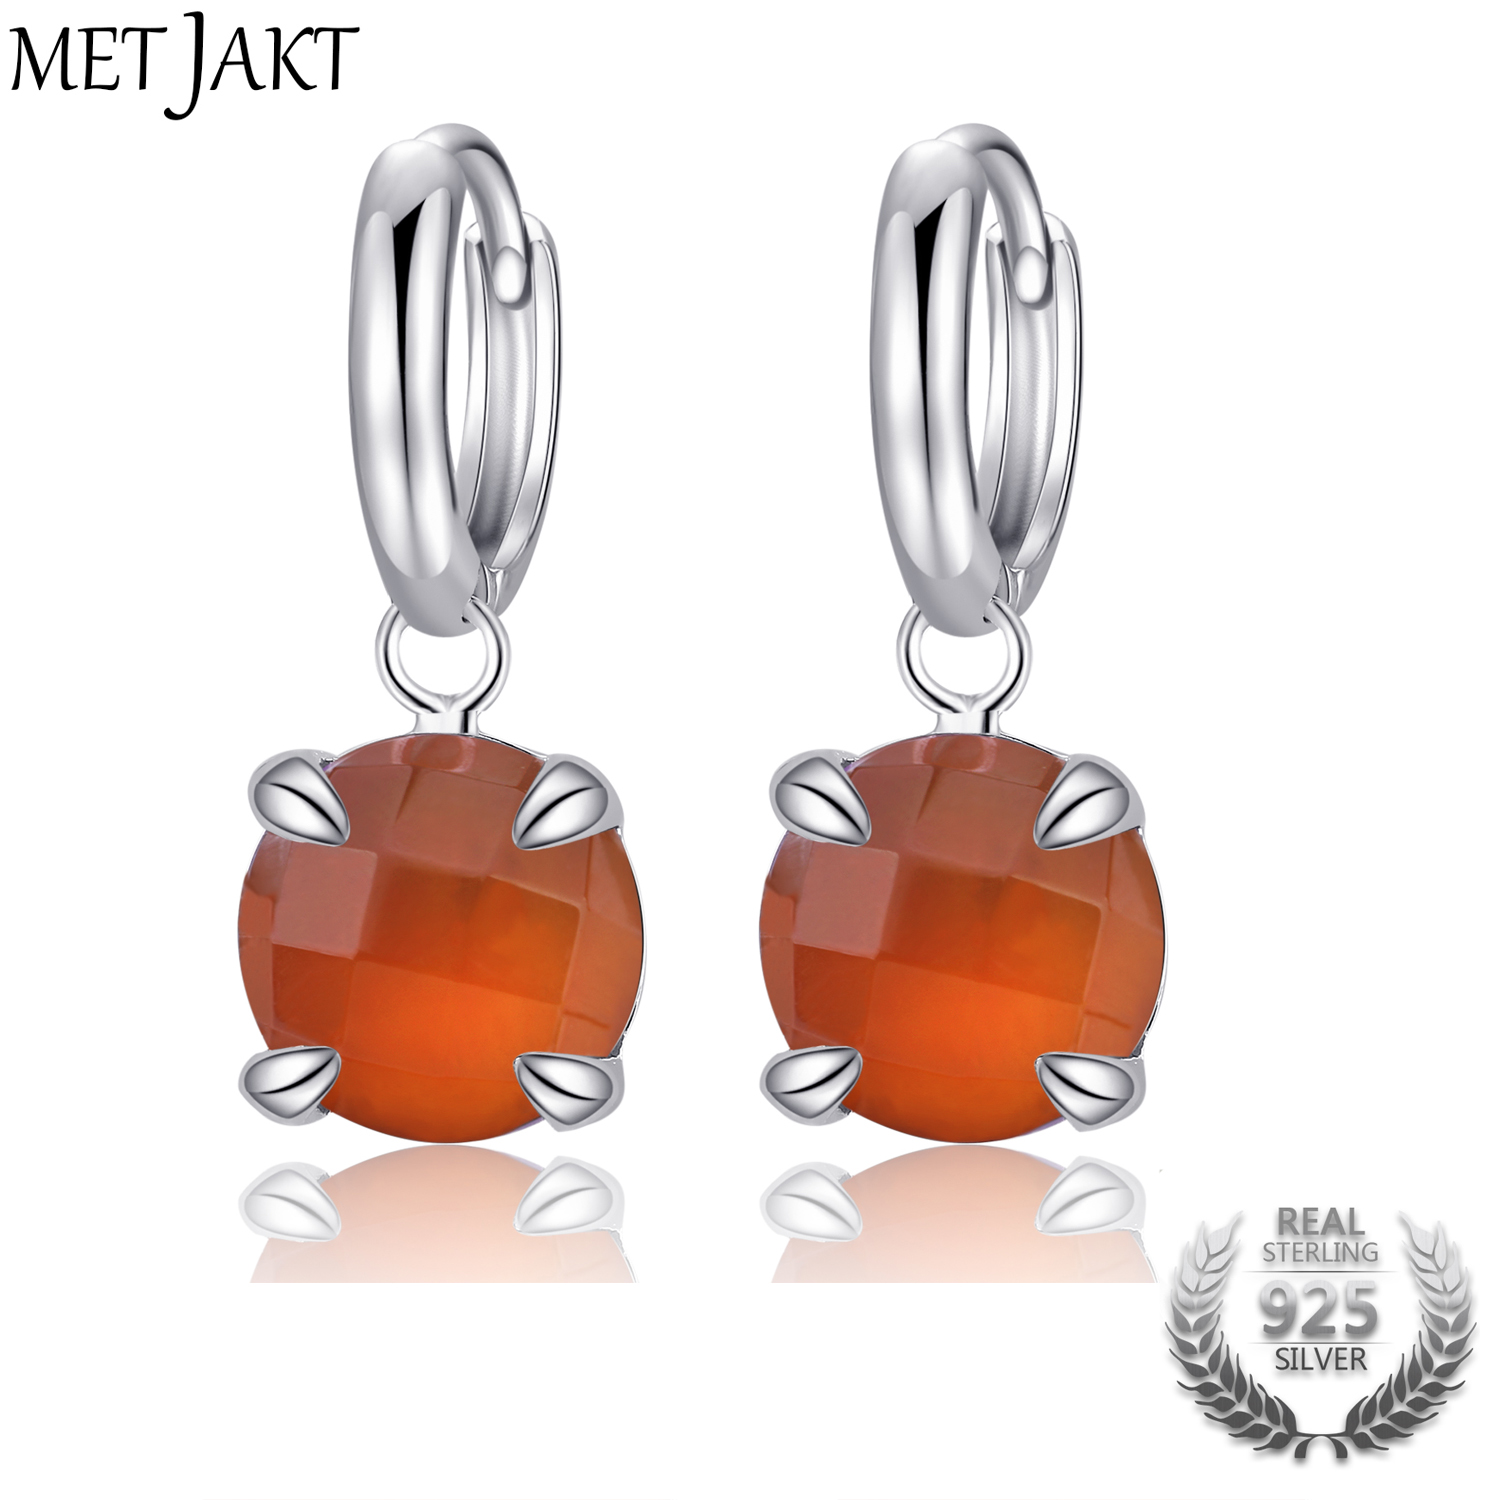 MetJakt Classic Natural Gemstone Red Agate Drop Earrings Solid S925 Sterling Silver Hook Earring for Women's Fine Jewelry metjakt bohemia natural agate white chalcedony drop earrings with zircon solid 925 sterling silver earring for women jewelry